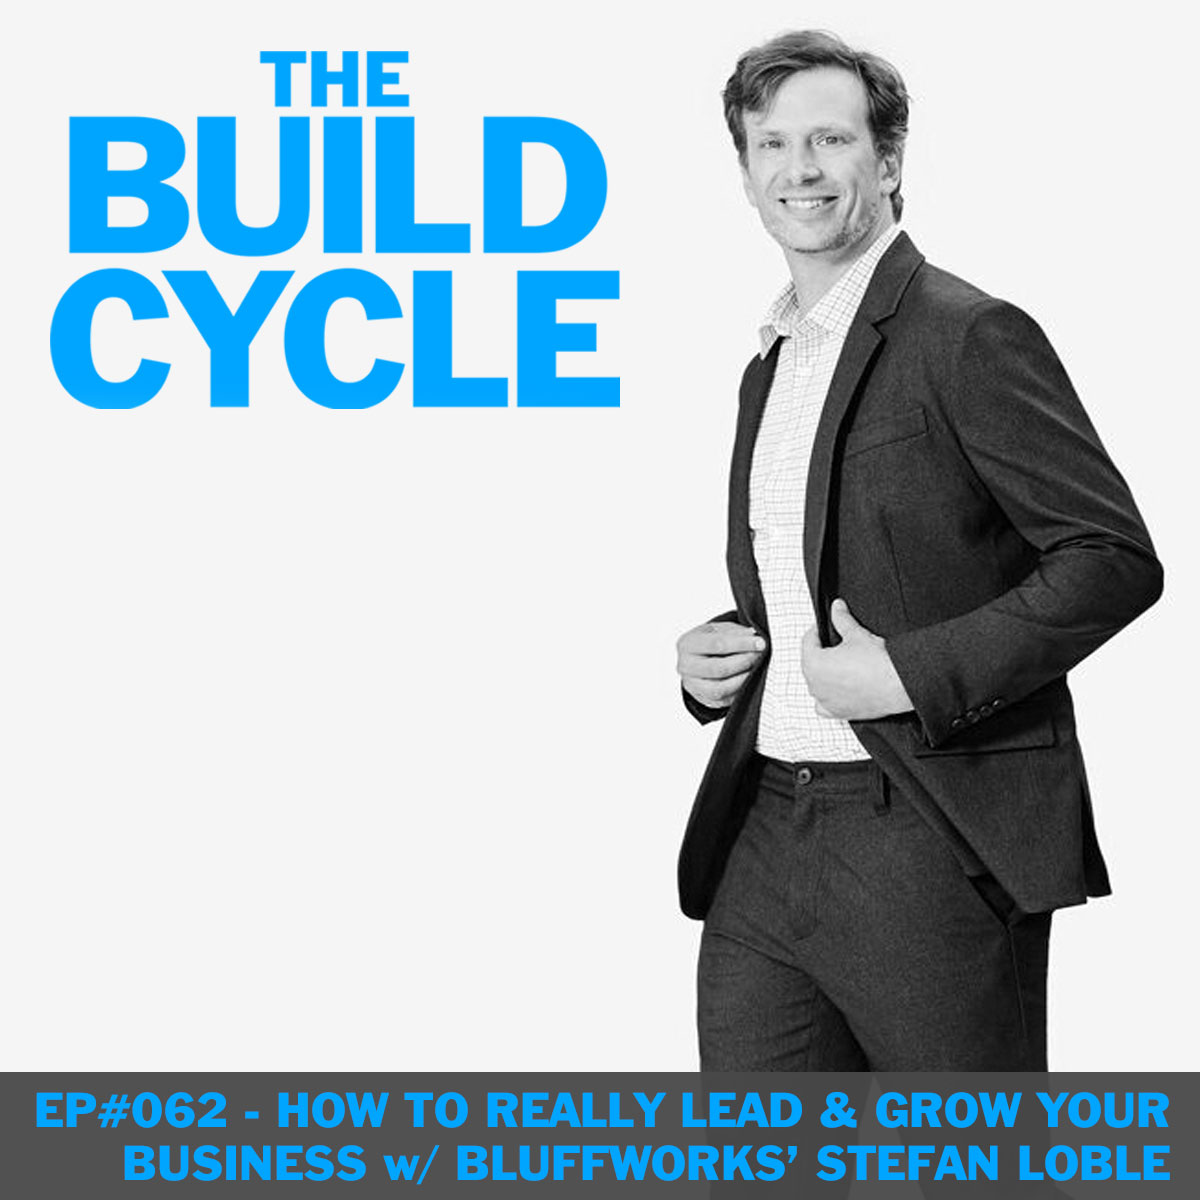 Ep #062 - How to Grow & Lead a Real Business w/ Bluffworks' Stefan Loble